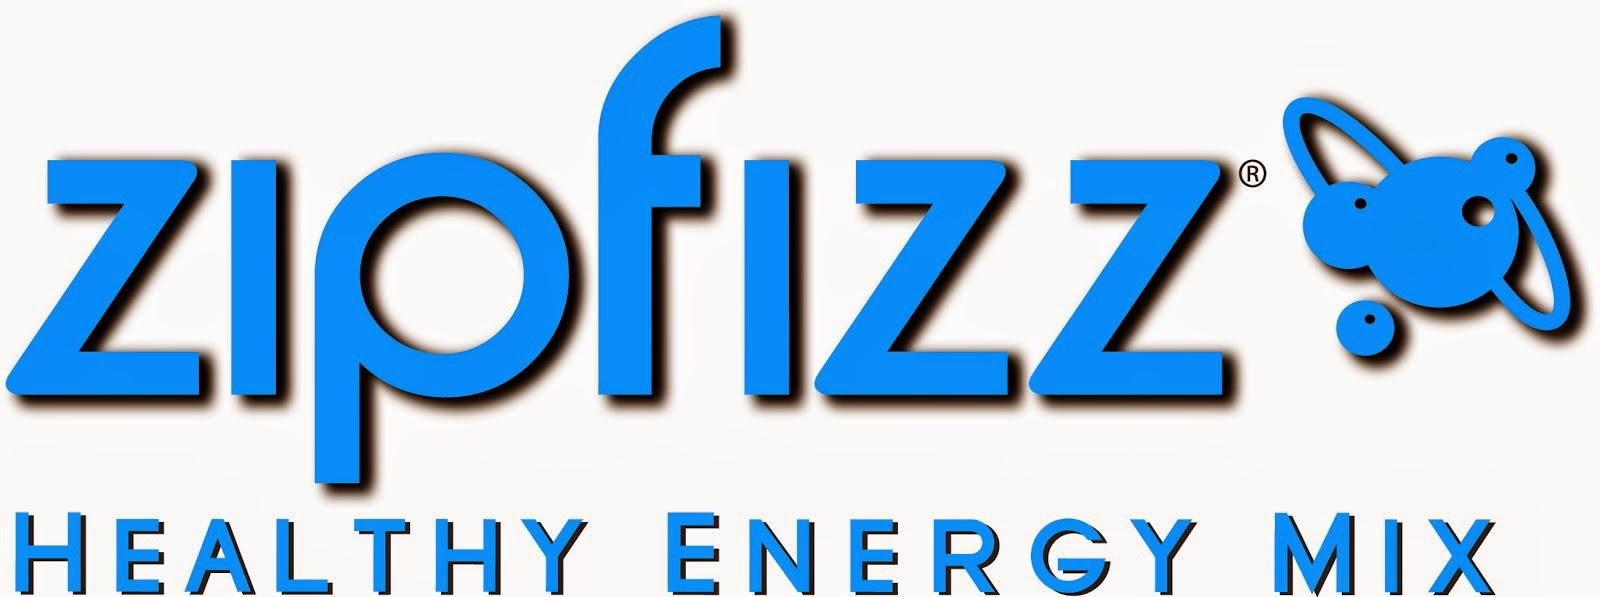 Zipfizz Healthy Energy